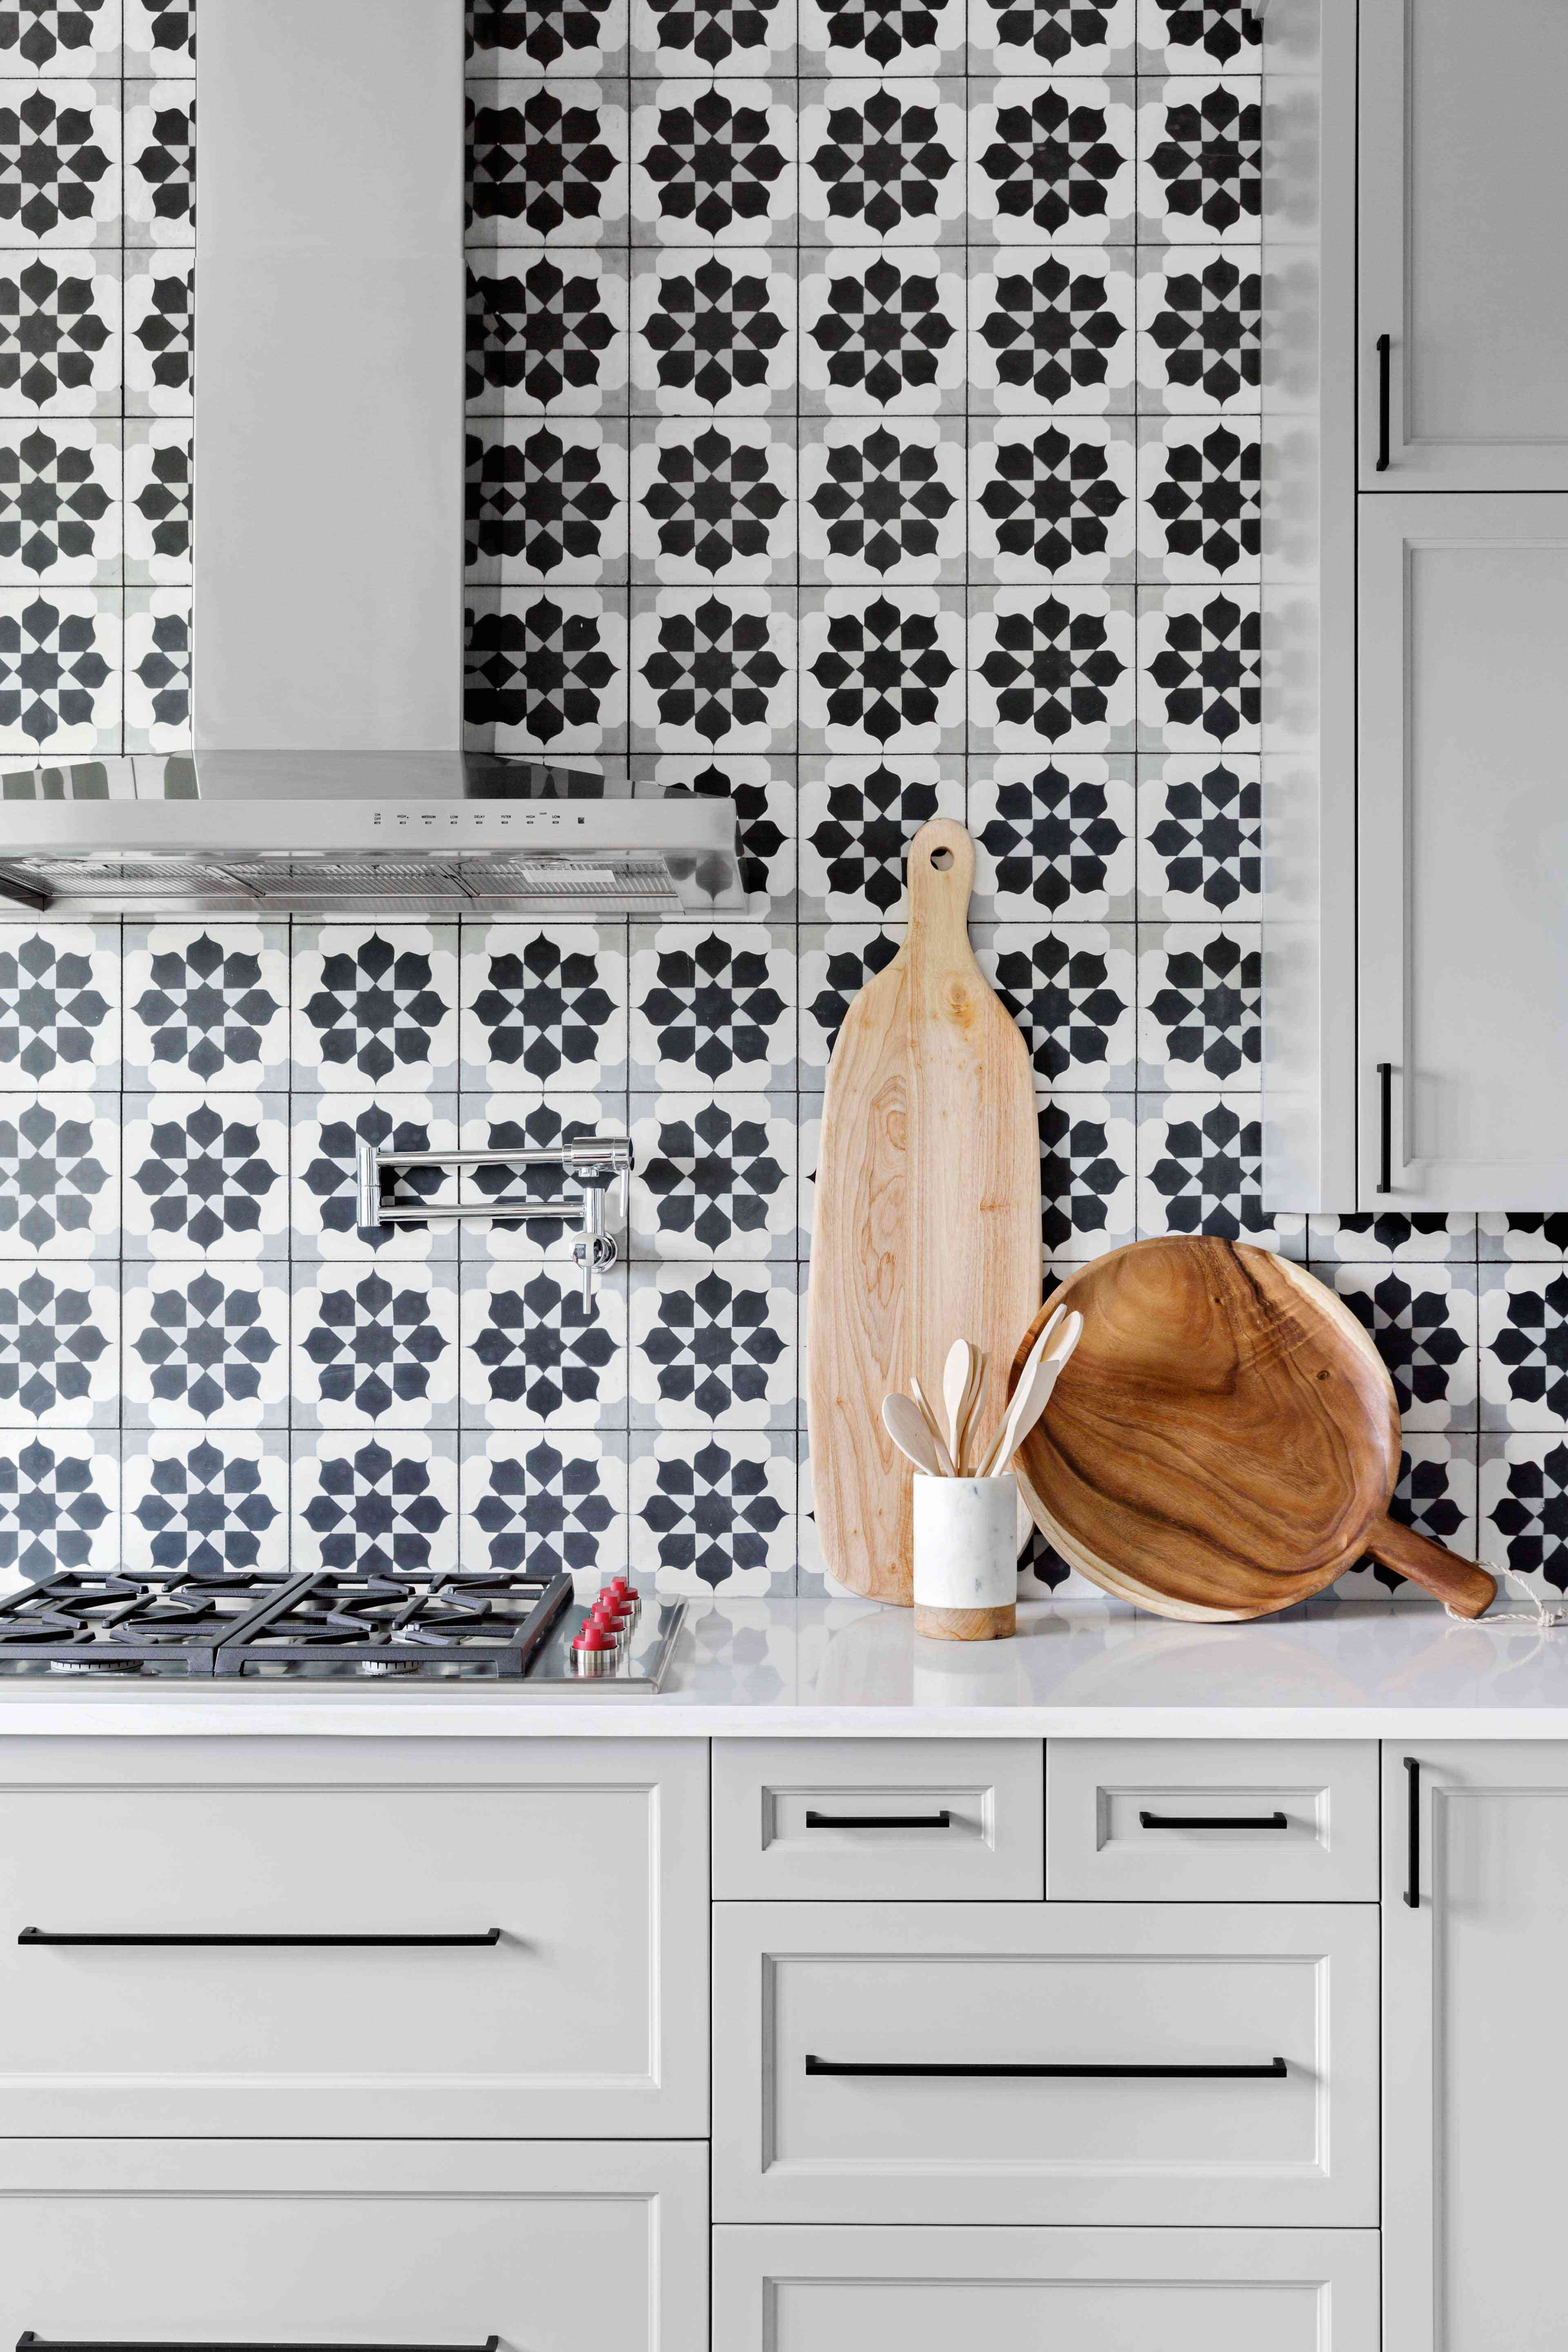 A kitchen with light gray cabinets and a boldly patterned black, white, and gray backsplash